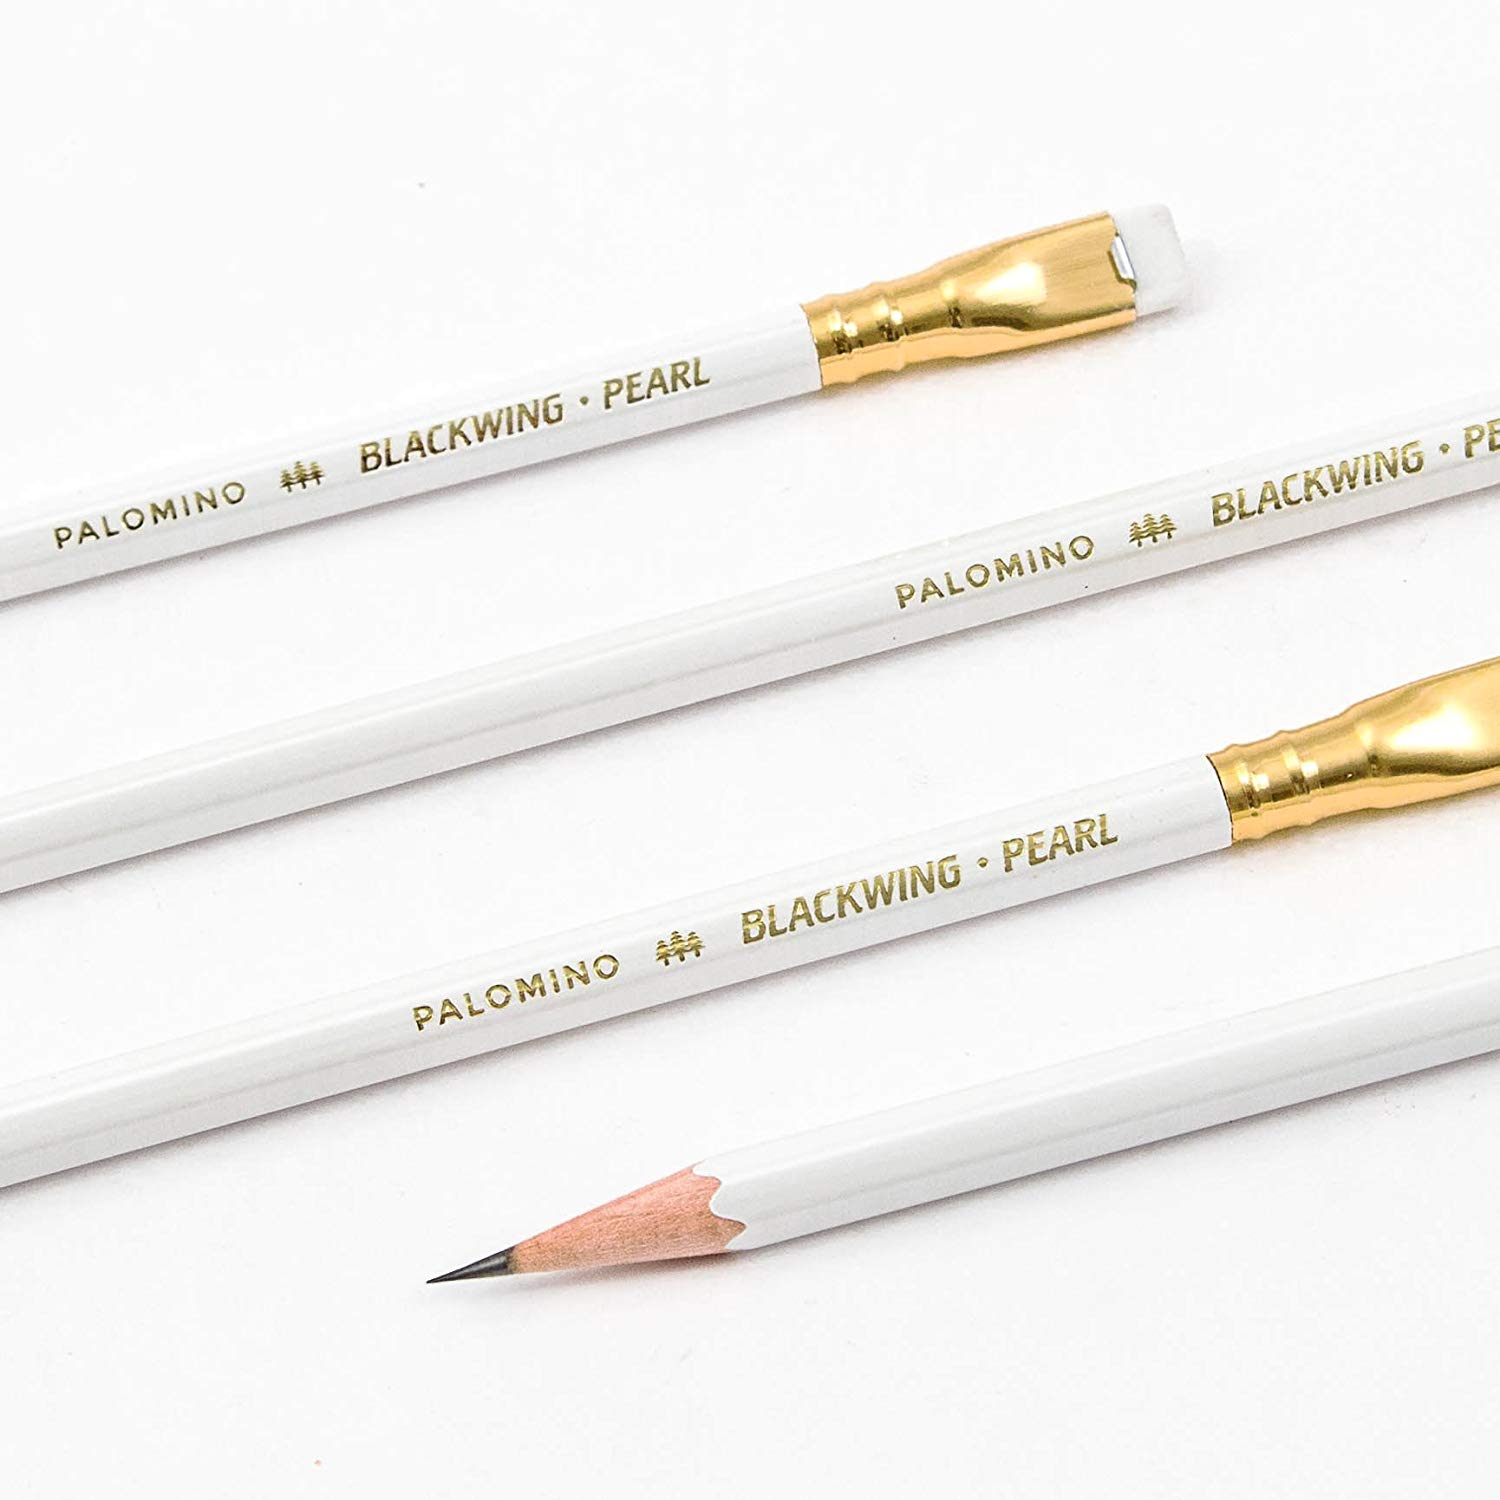 """Palomino Blackwing Pencils, 12 Pack - These soft, smooth-writing pencils date back to the 1930s and were beloved by John Steinbeck, Chuck Jones and Stephen Sondheim. The original slogan was """"half the pressure, twice the speed."""""""